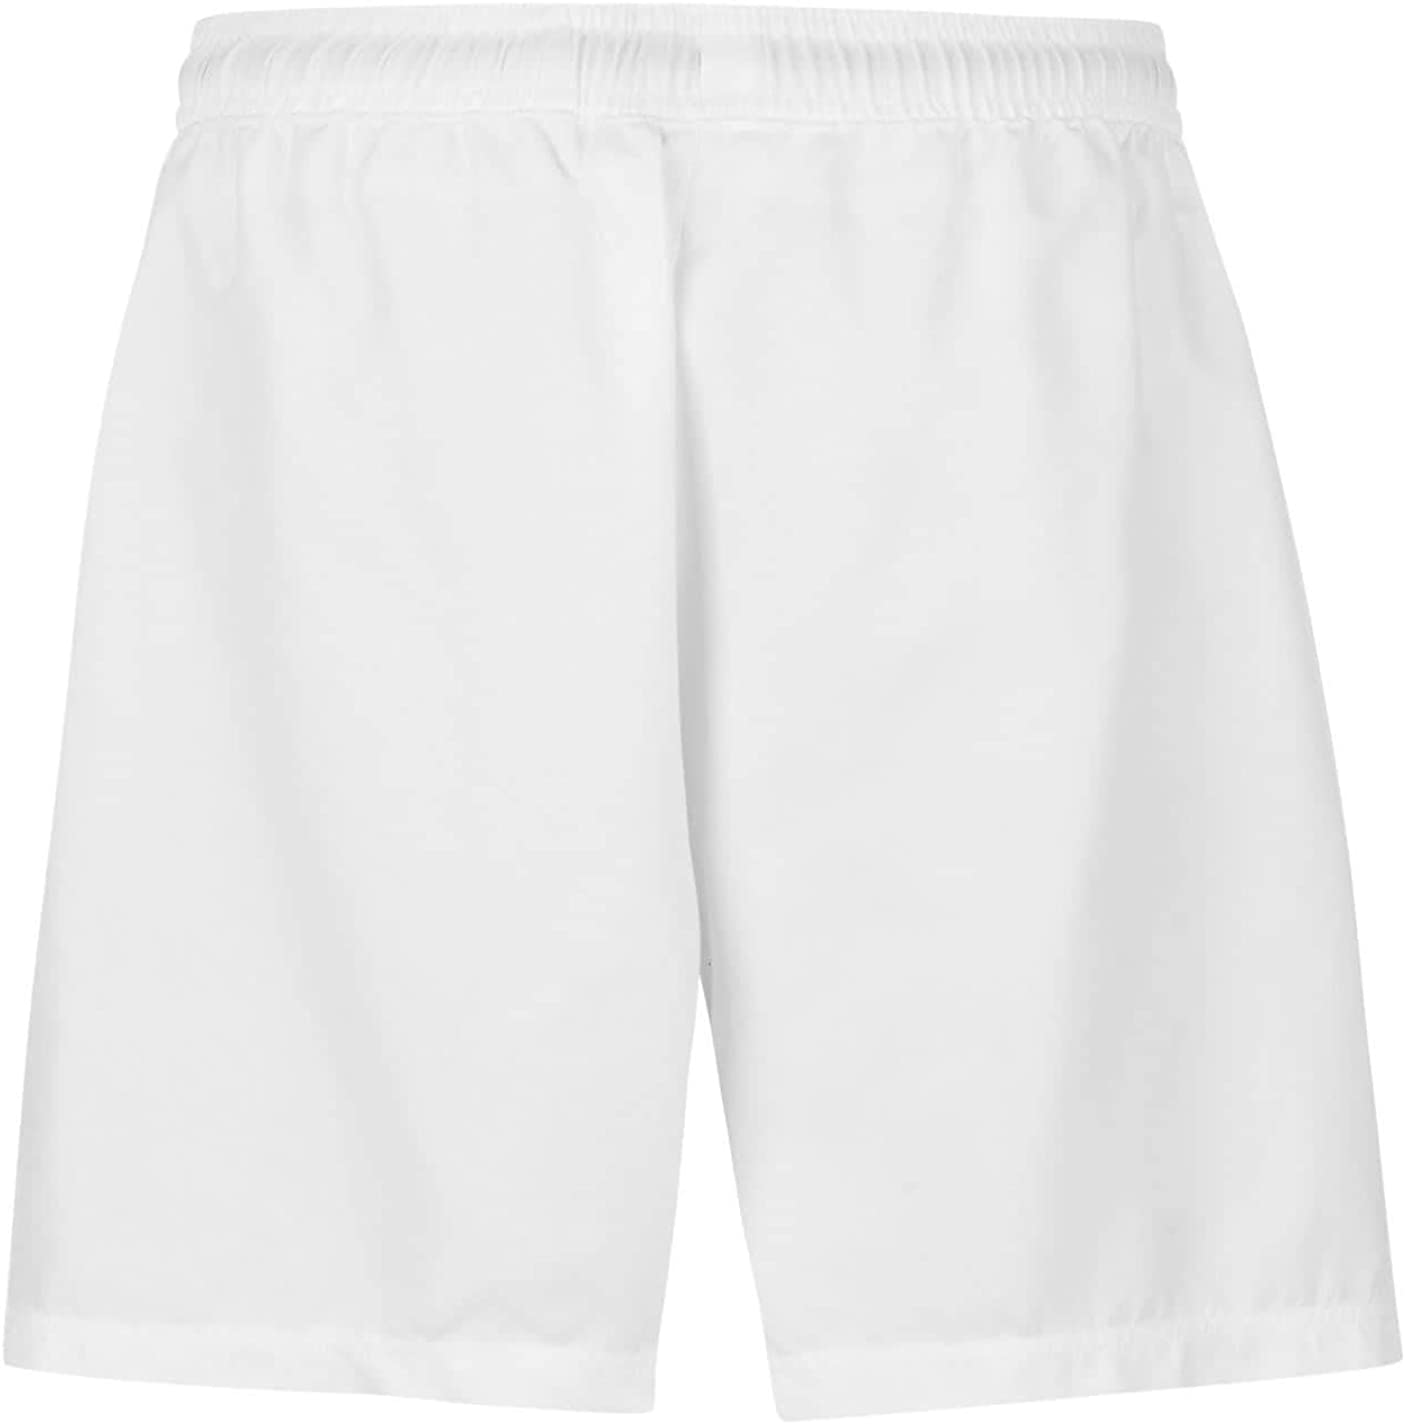 Hot Tuna Mens Logo Shorts Swim Pants Trousers Bottoms